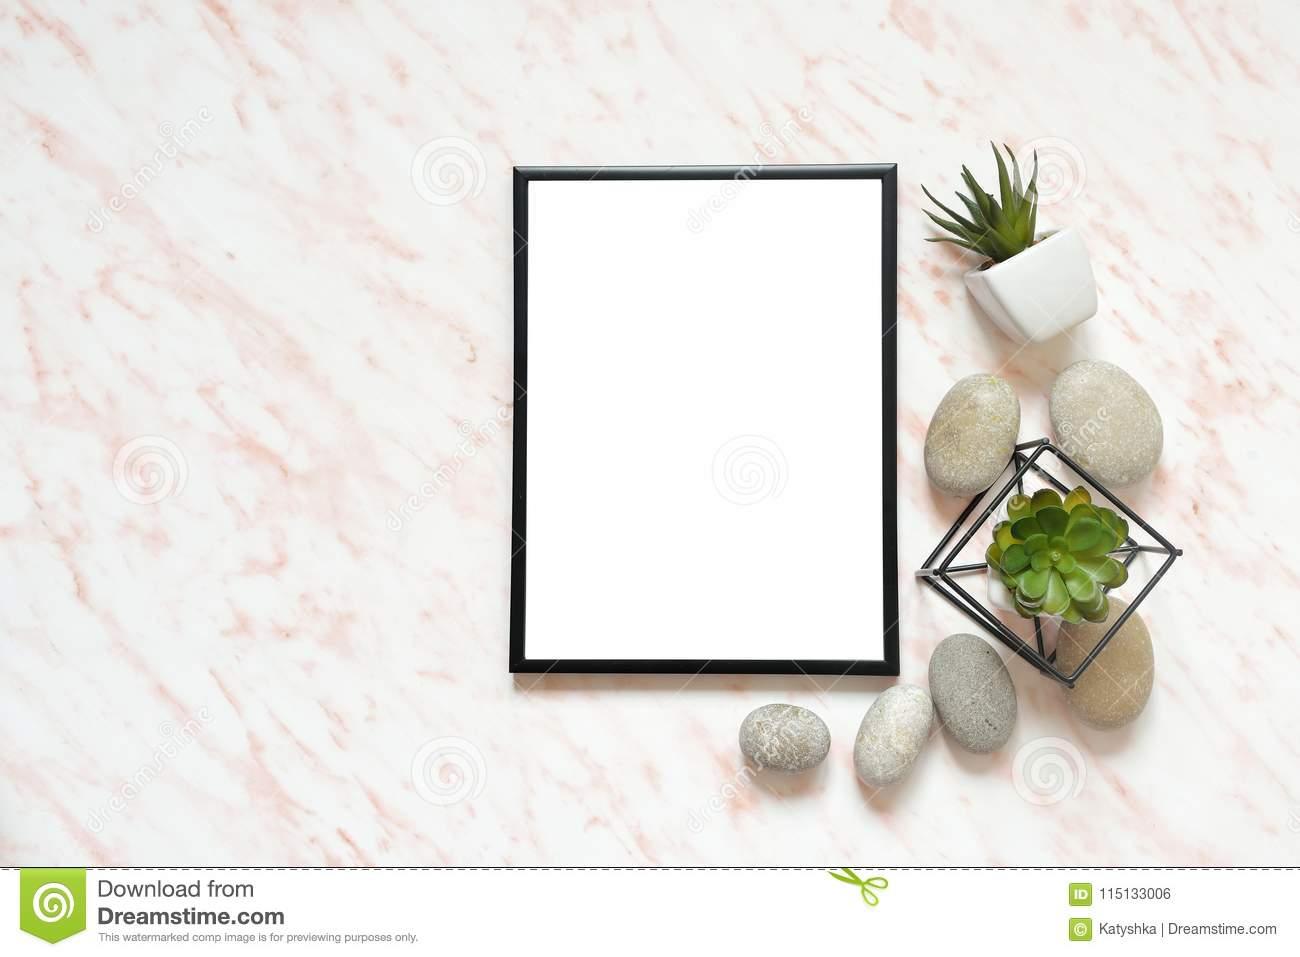 Flat lay marble desk with white empty frame for text, stones and succulents background